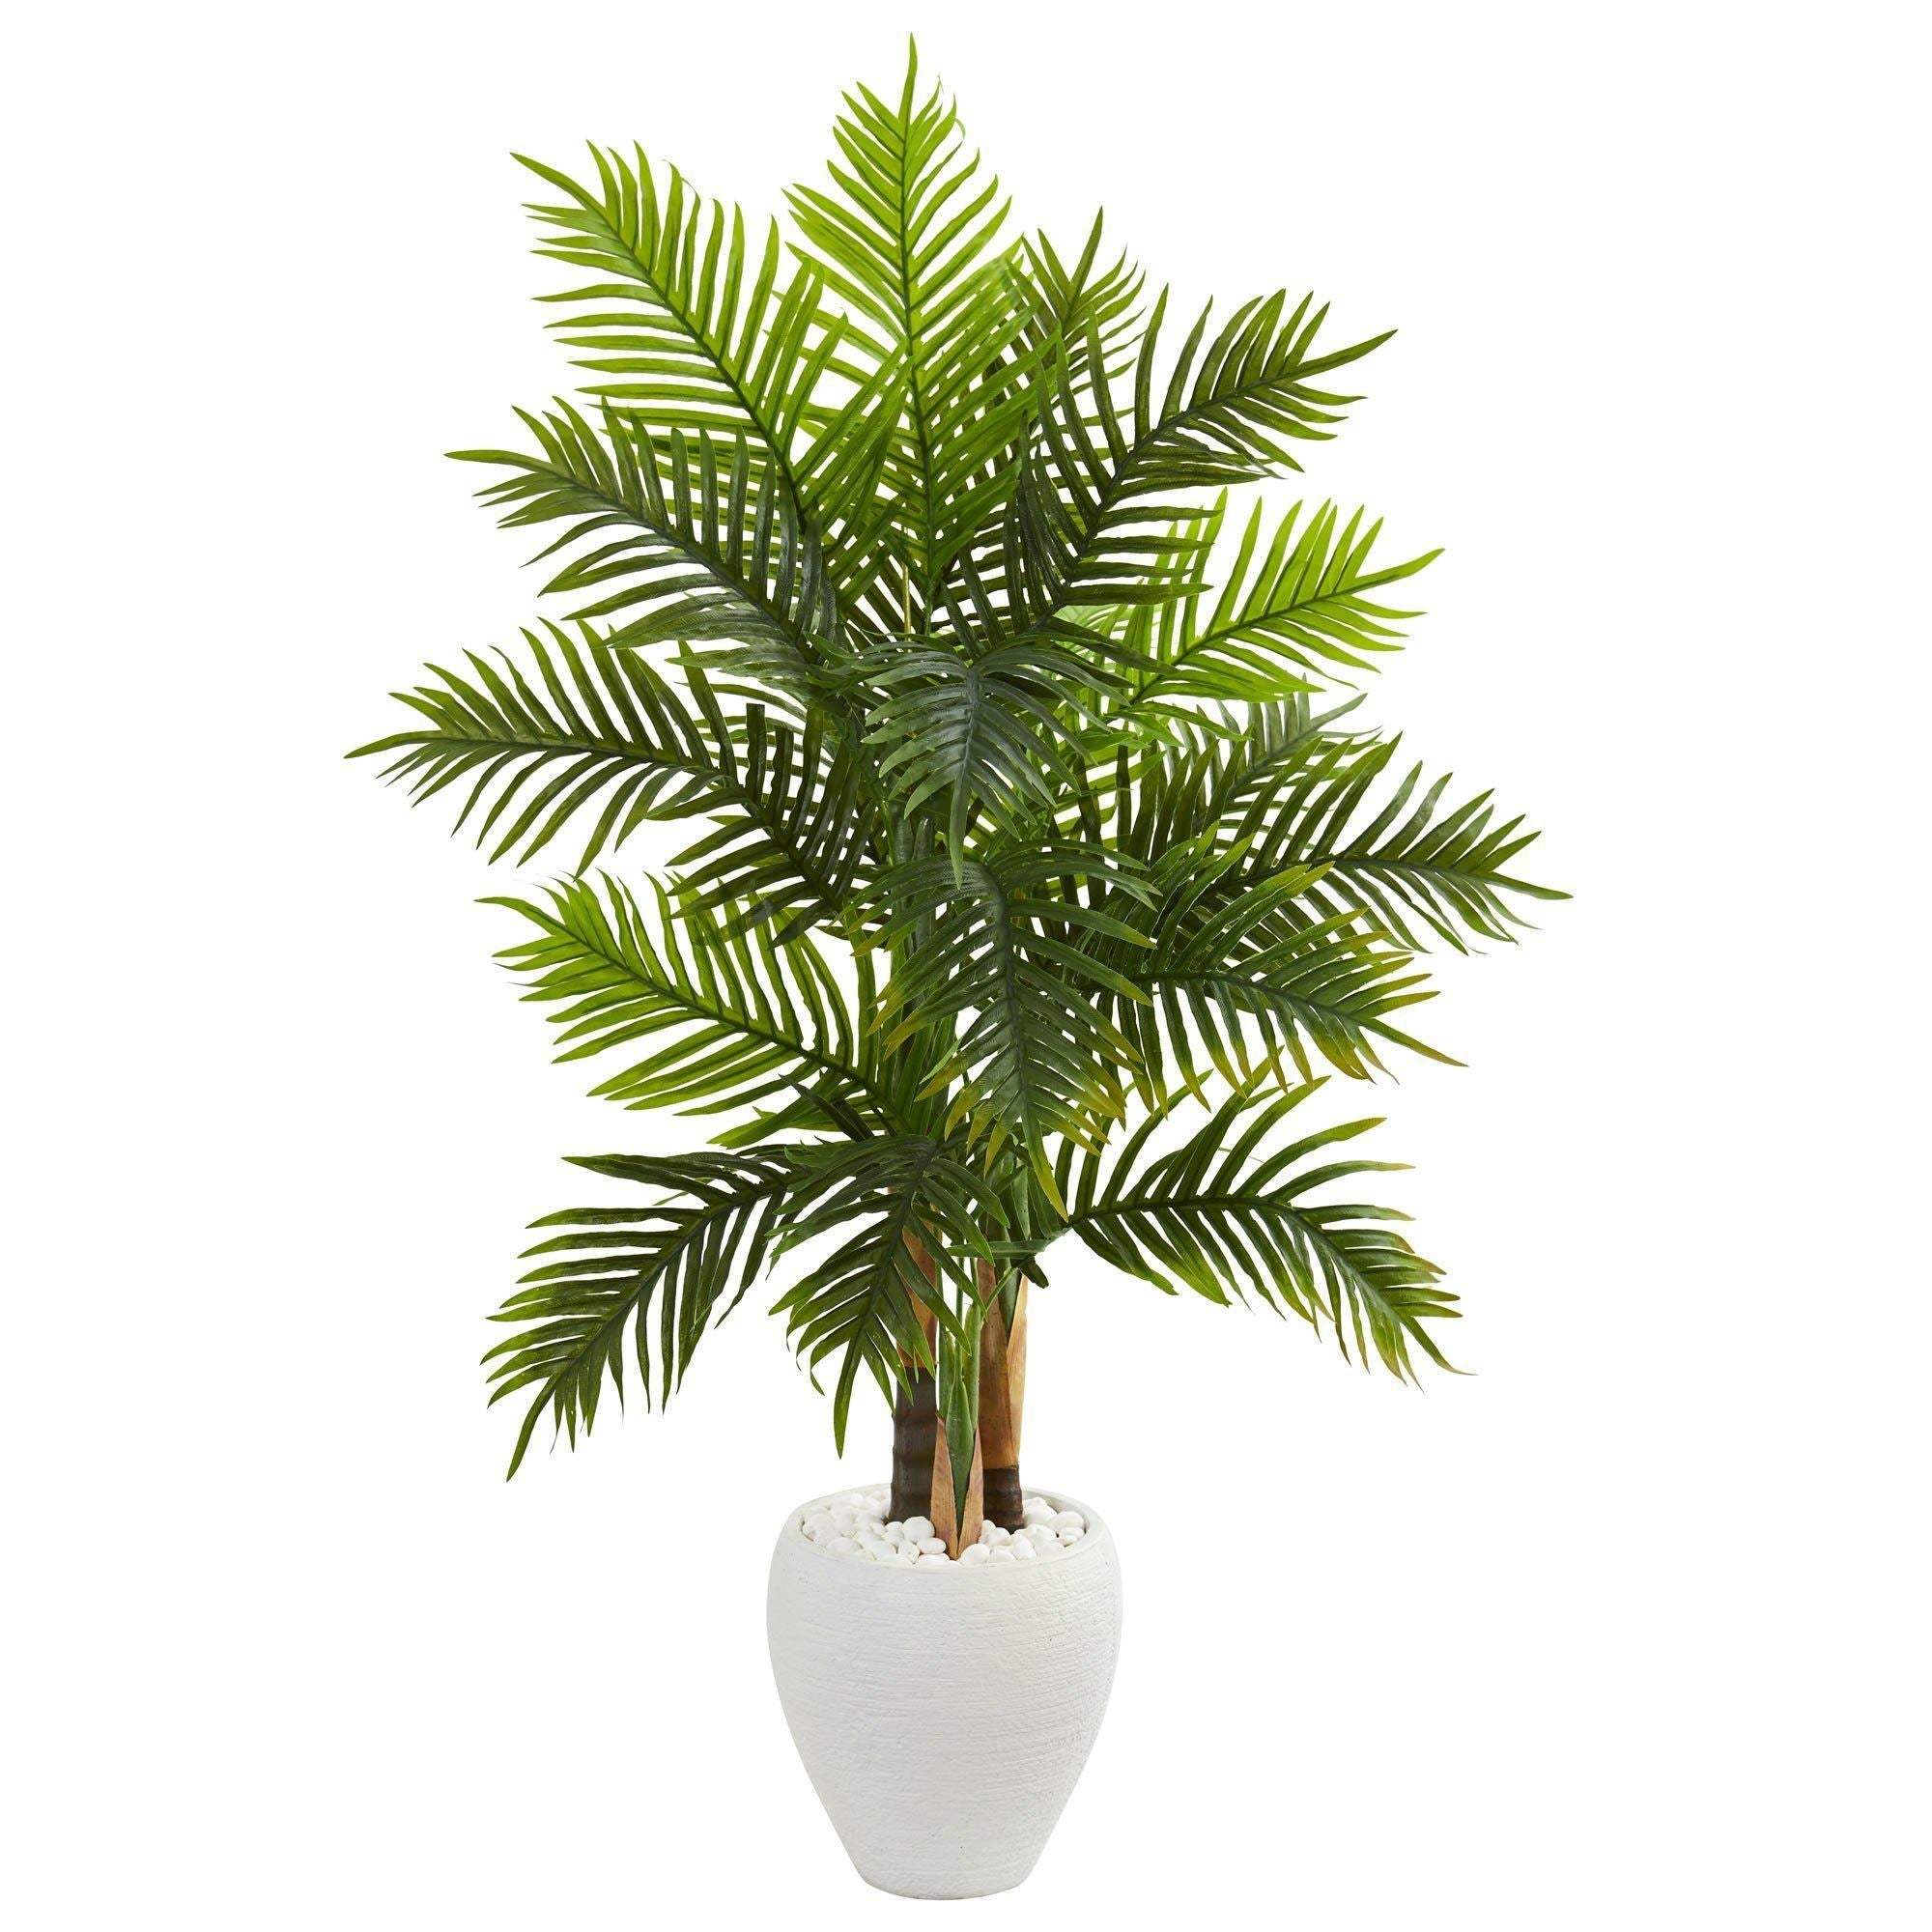 5 Areca Palm Artificial Tree In White Planter Real Touch Nearly Natural